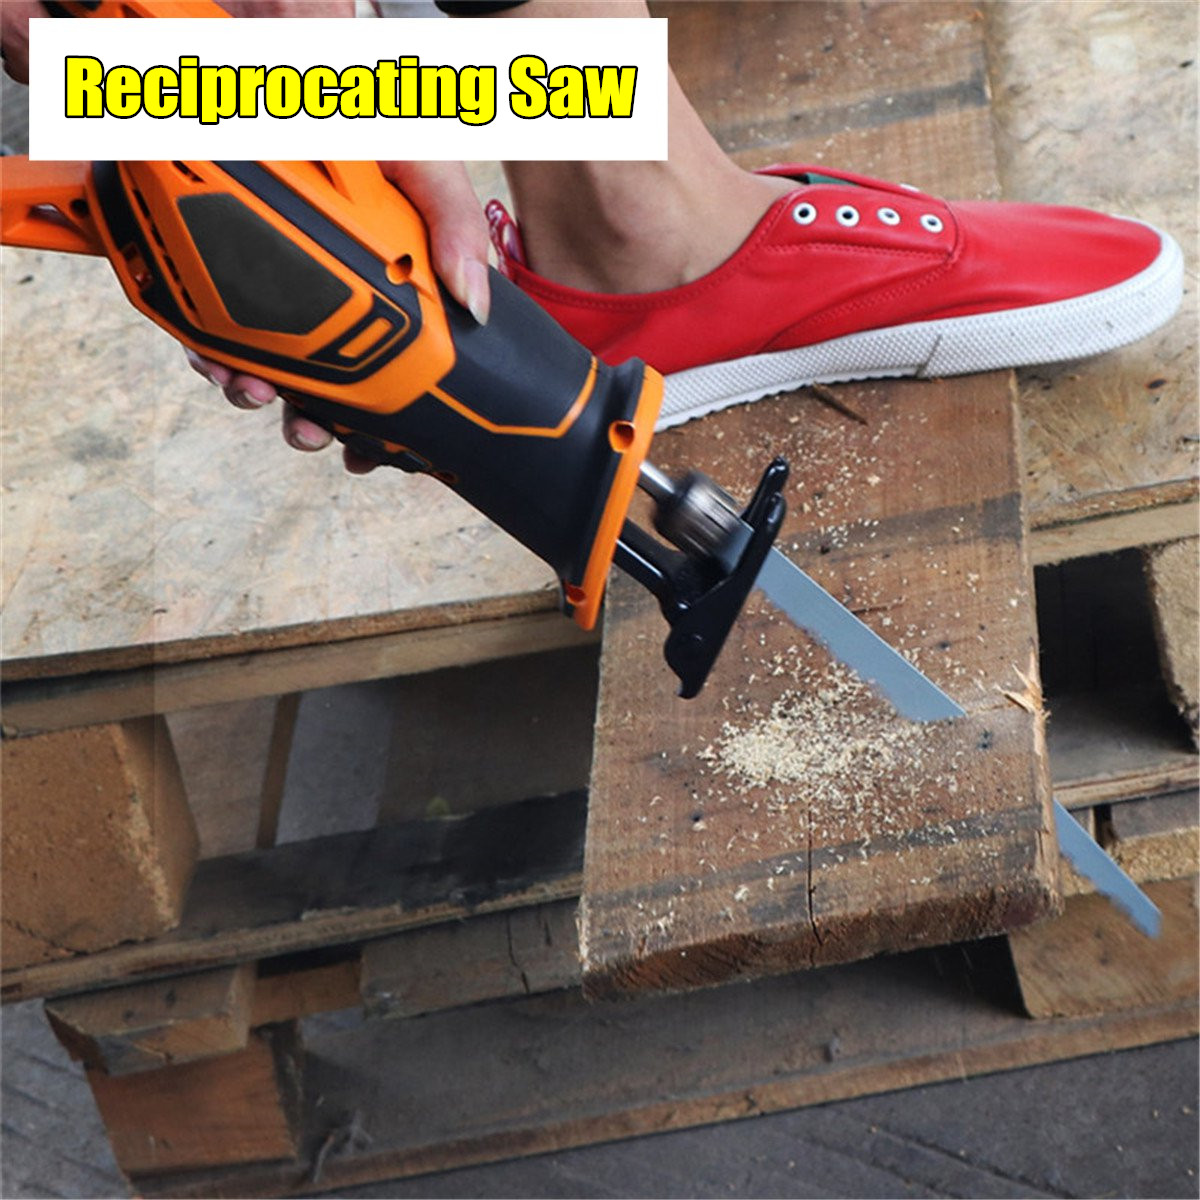 Drillpro 20V 3000mAh Rechargeable Reciprocating Saw Wood Cutting Saw Electric Wood Metal Plastic Saw portable rechargeable reciprocating saw wood cutting saw 20v 3000mah electric wood metal plastic saw